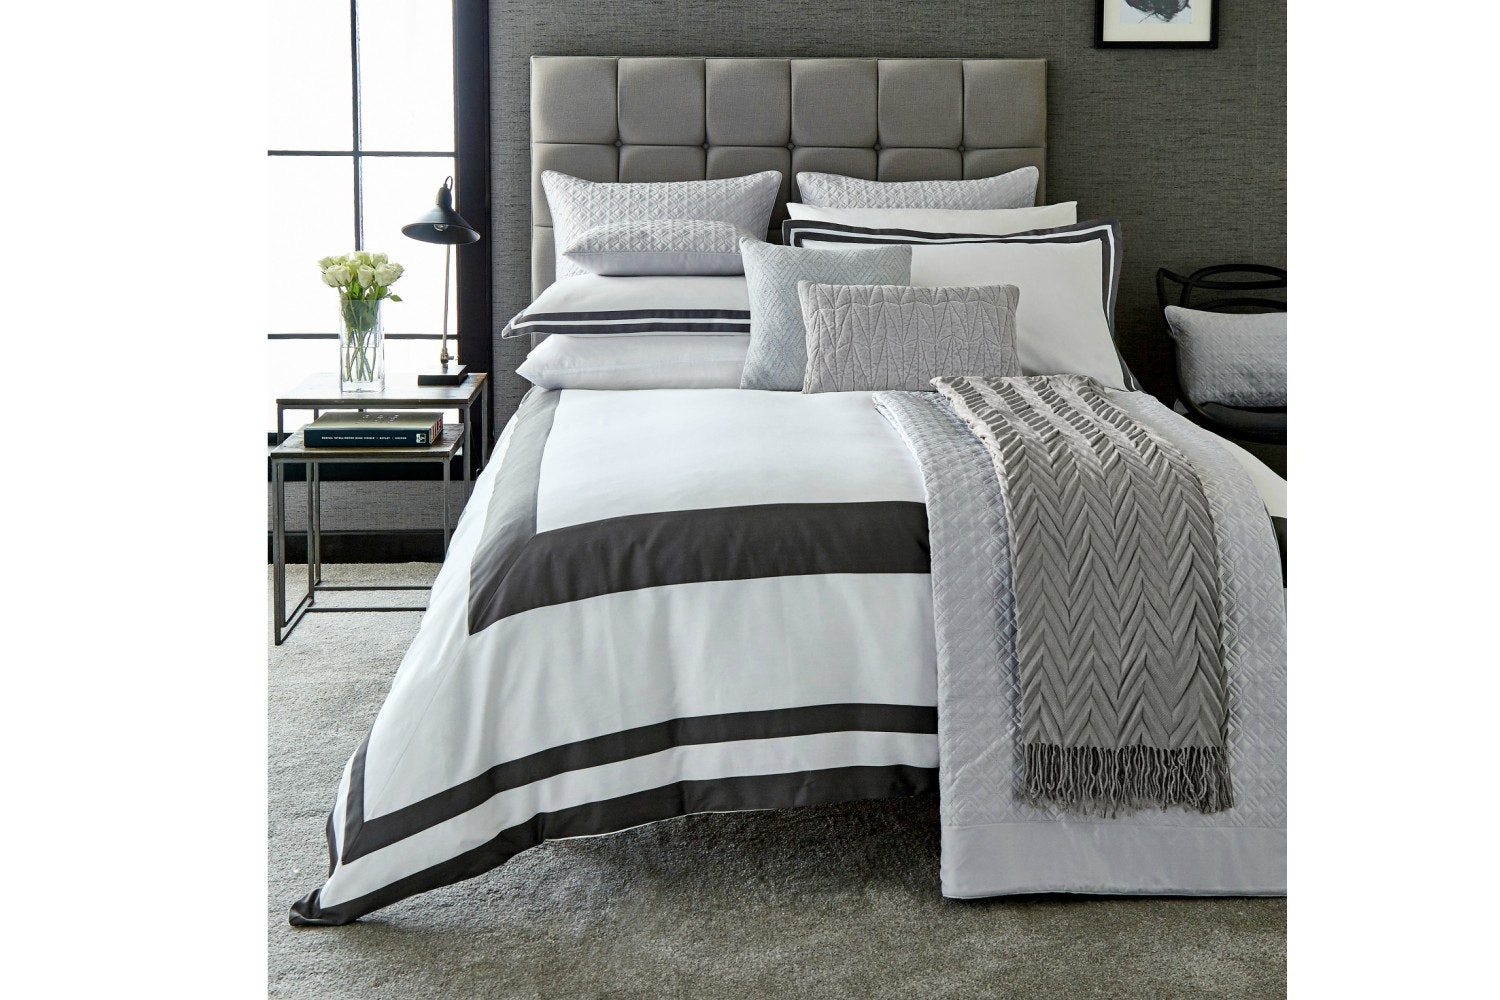 Imperial Graphite & White Duvet Cover | Double